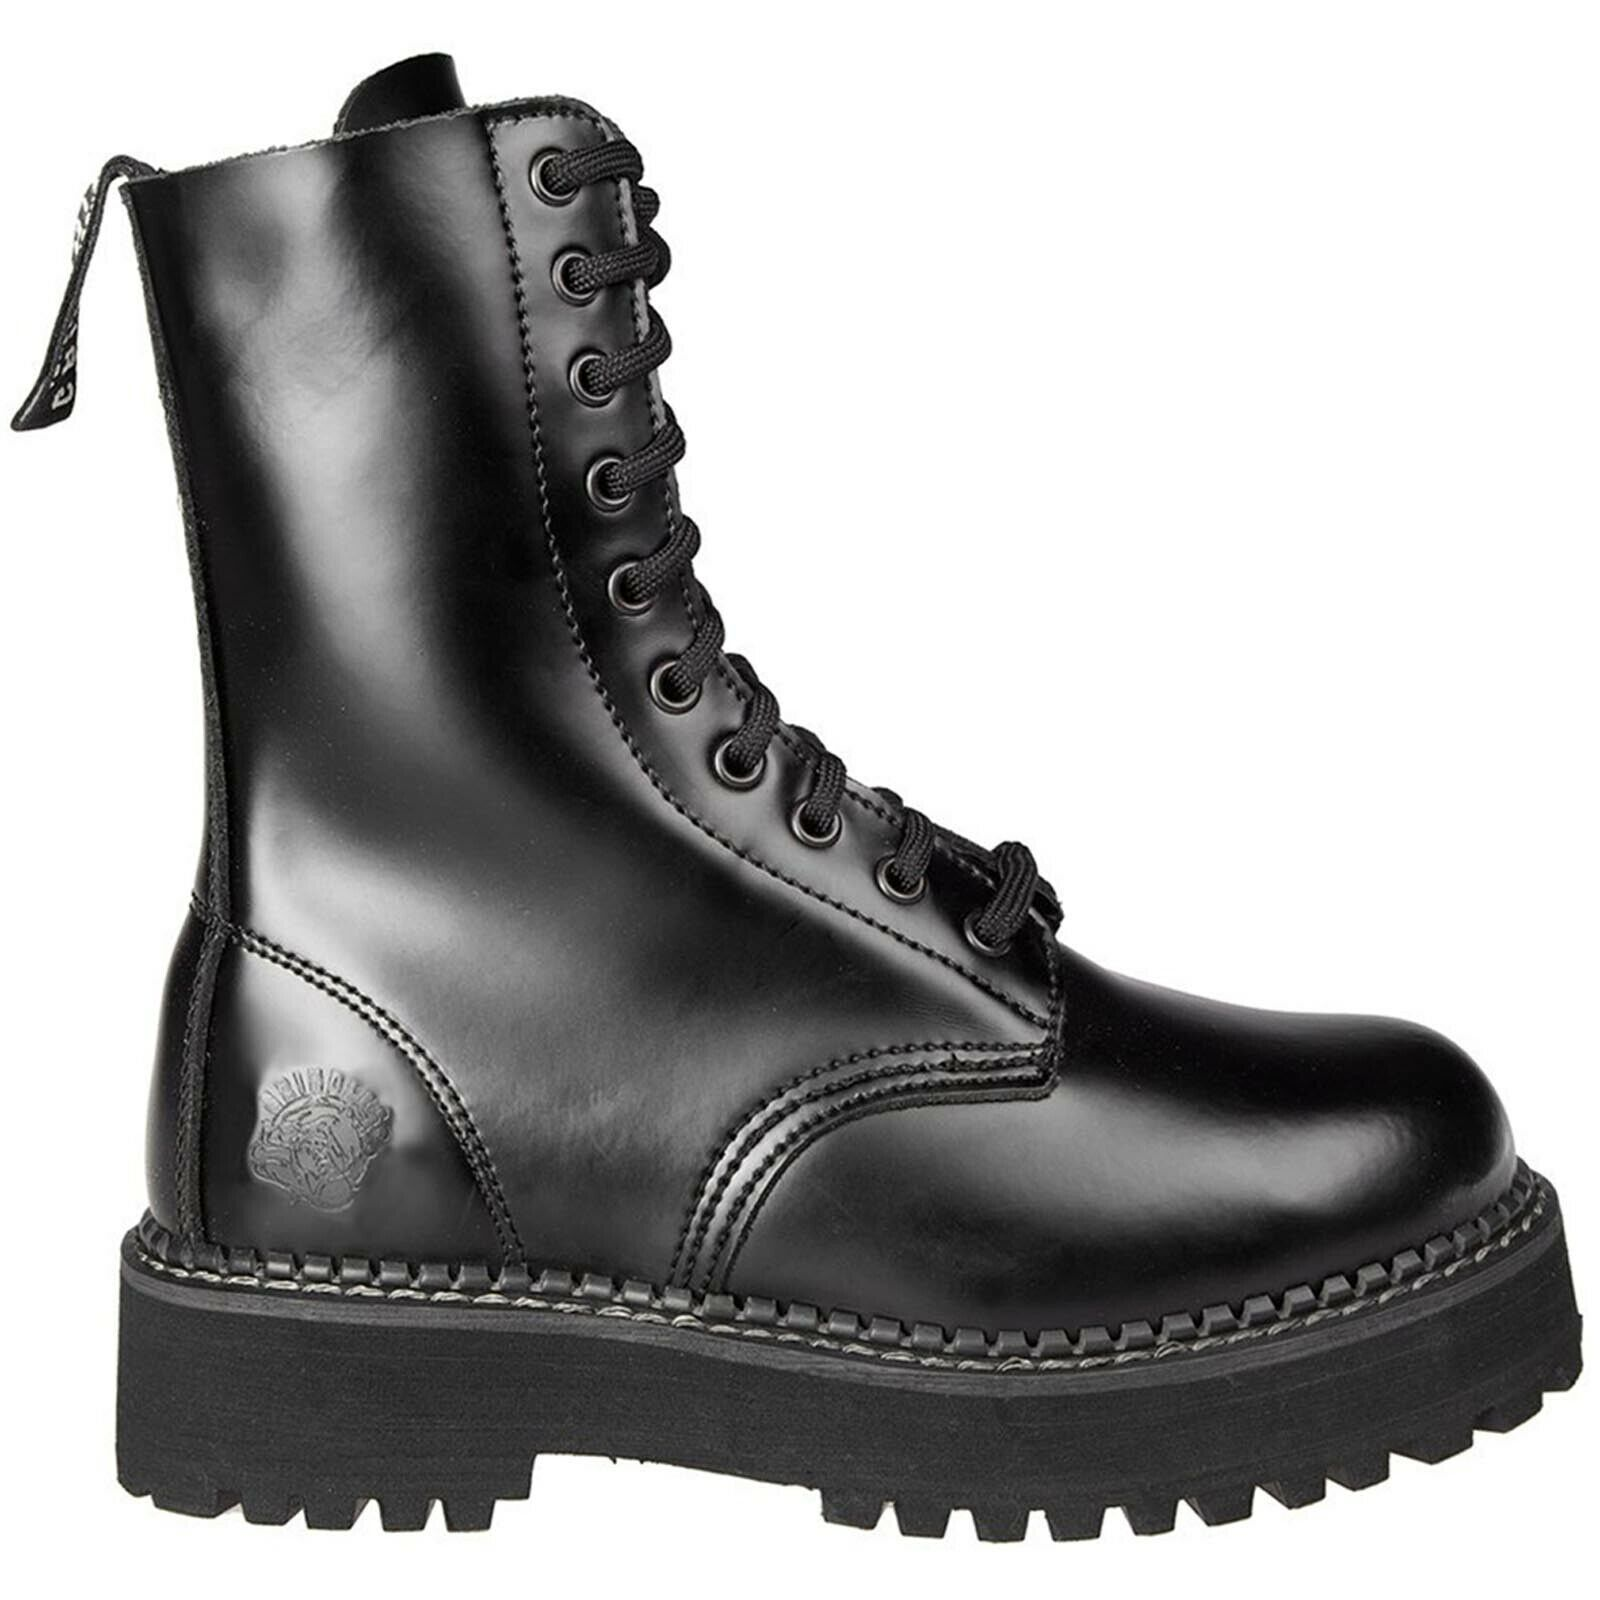 Grinders CS Taylor Stiefel Damänner High Profile Lace Up